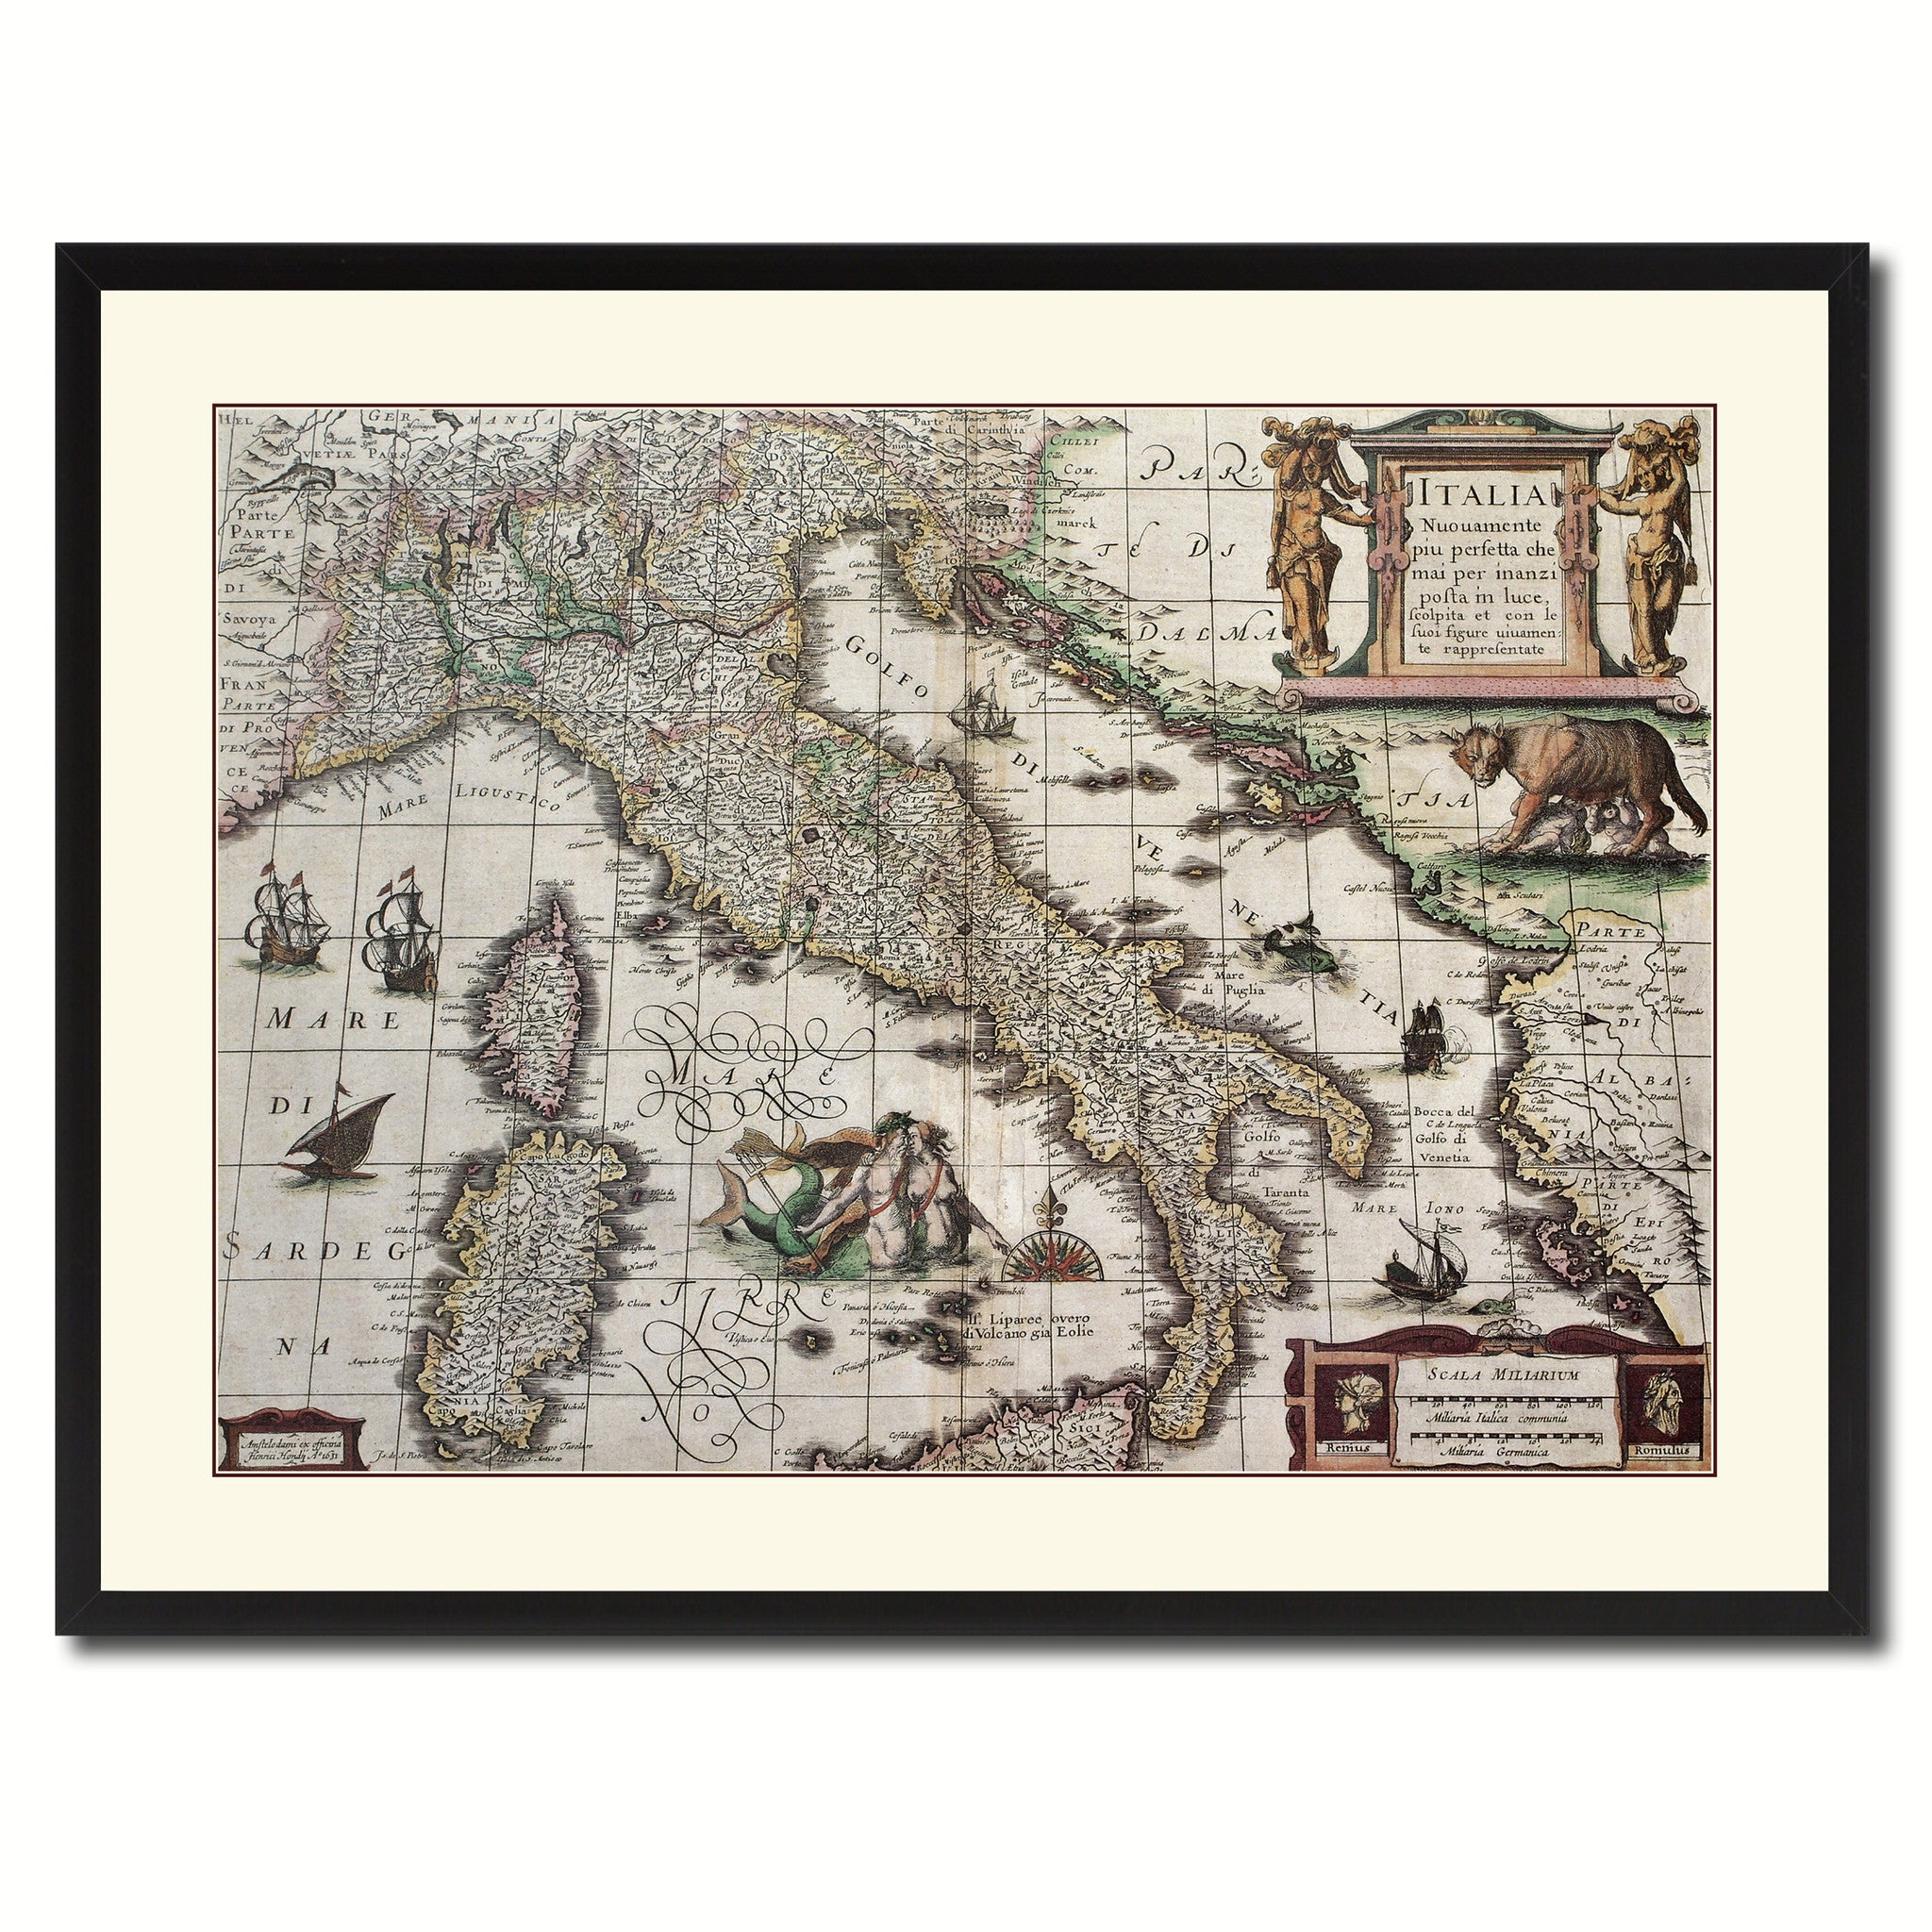 Italy vintage antique map wall art home decor gift ideas for Home interiors and gifts framed art